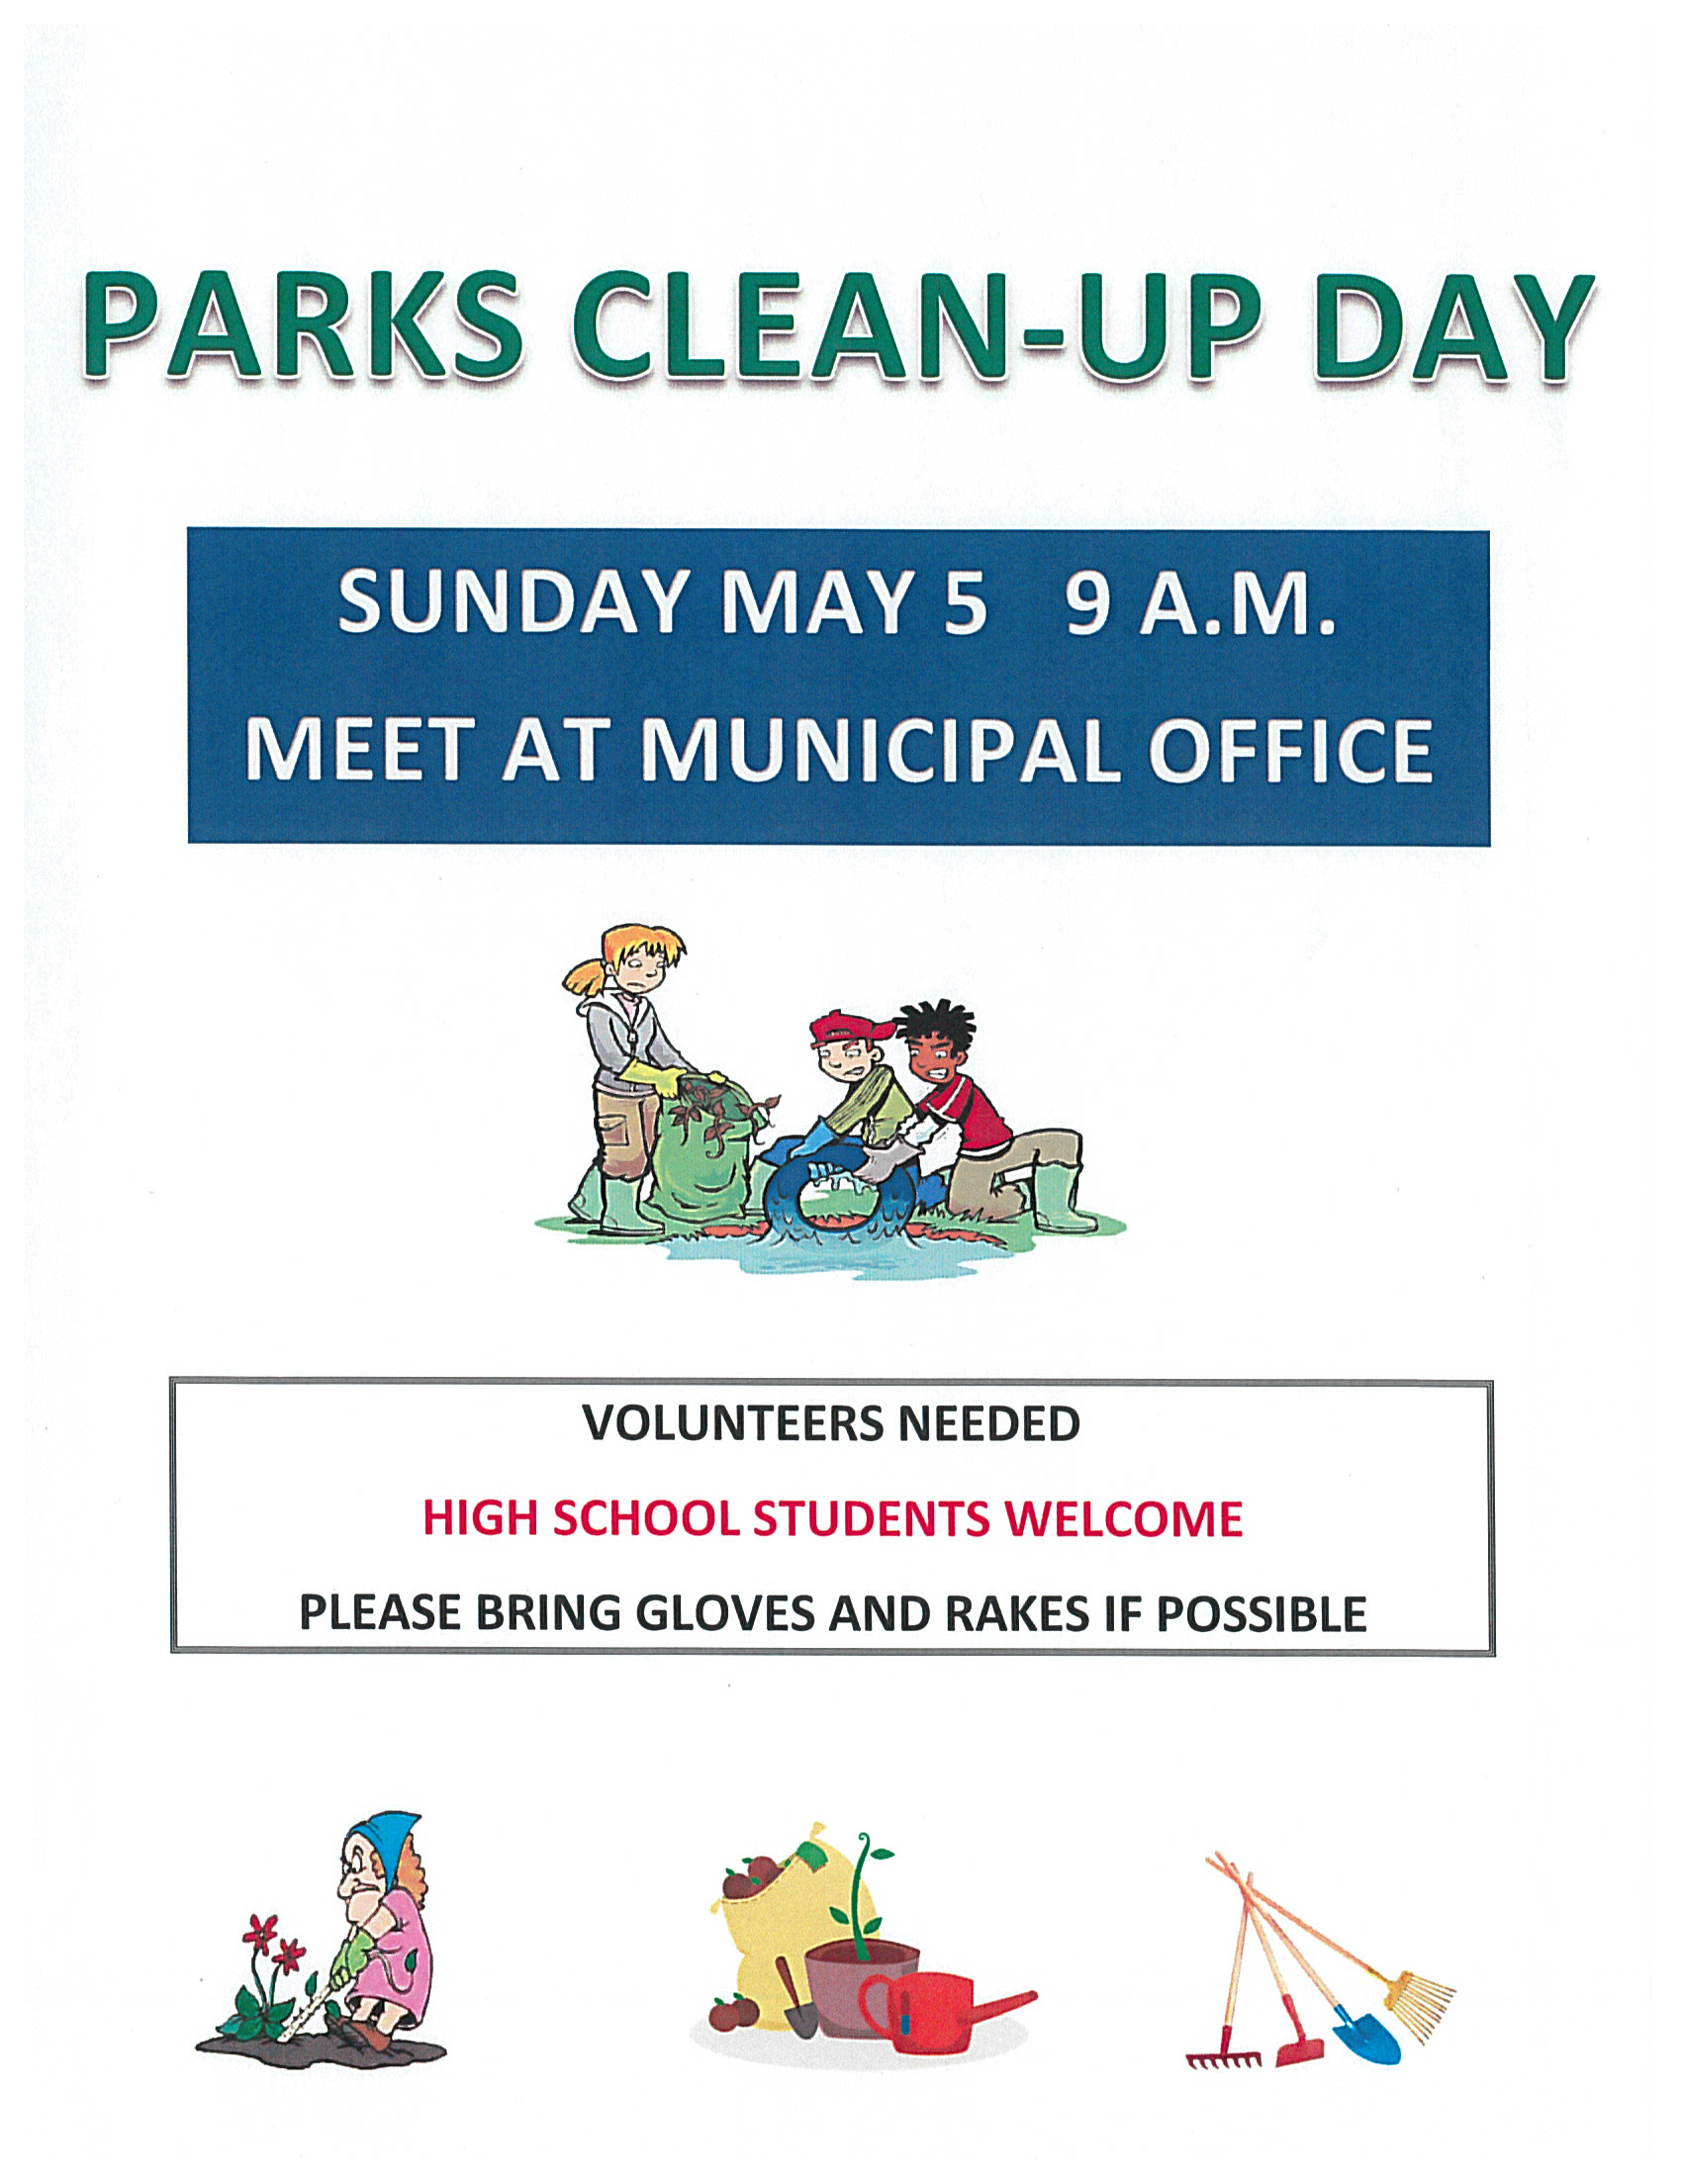 Parks Clean-up Day